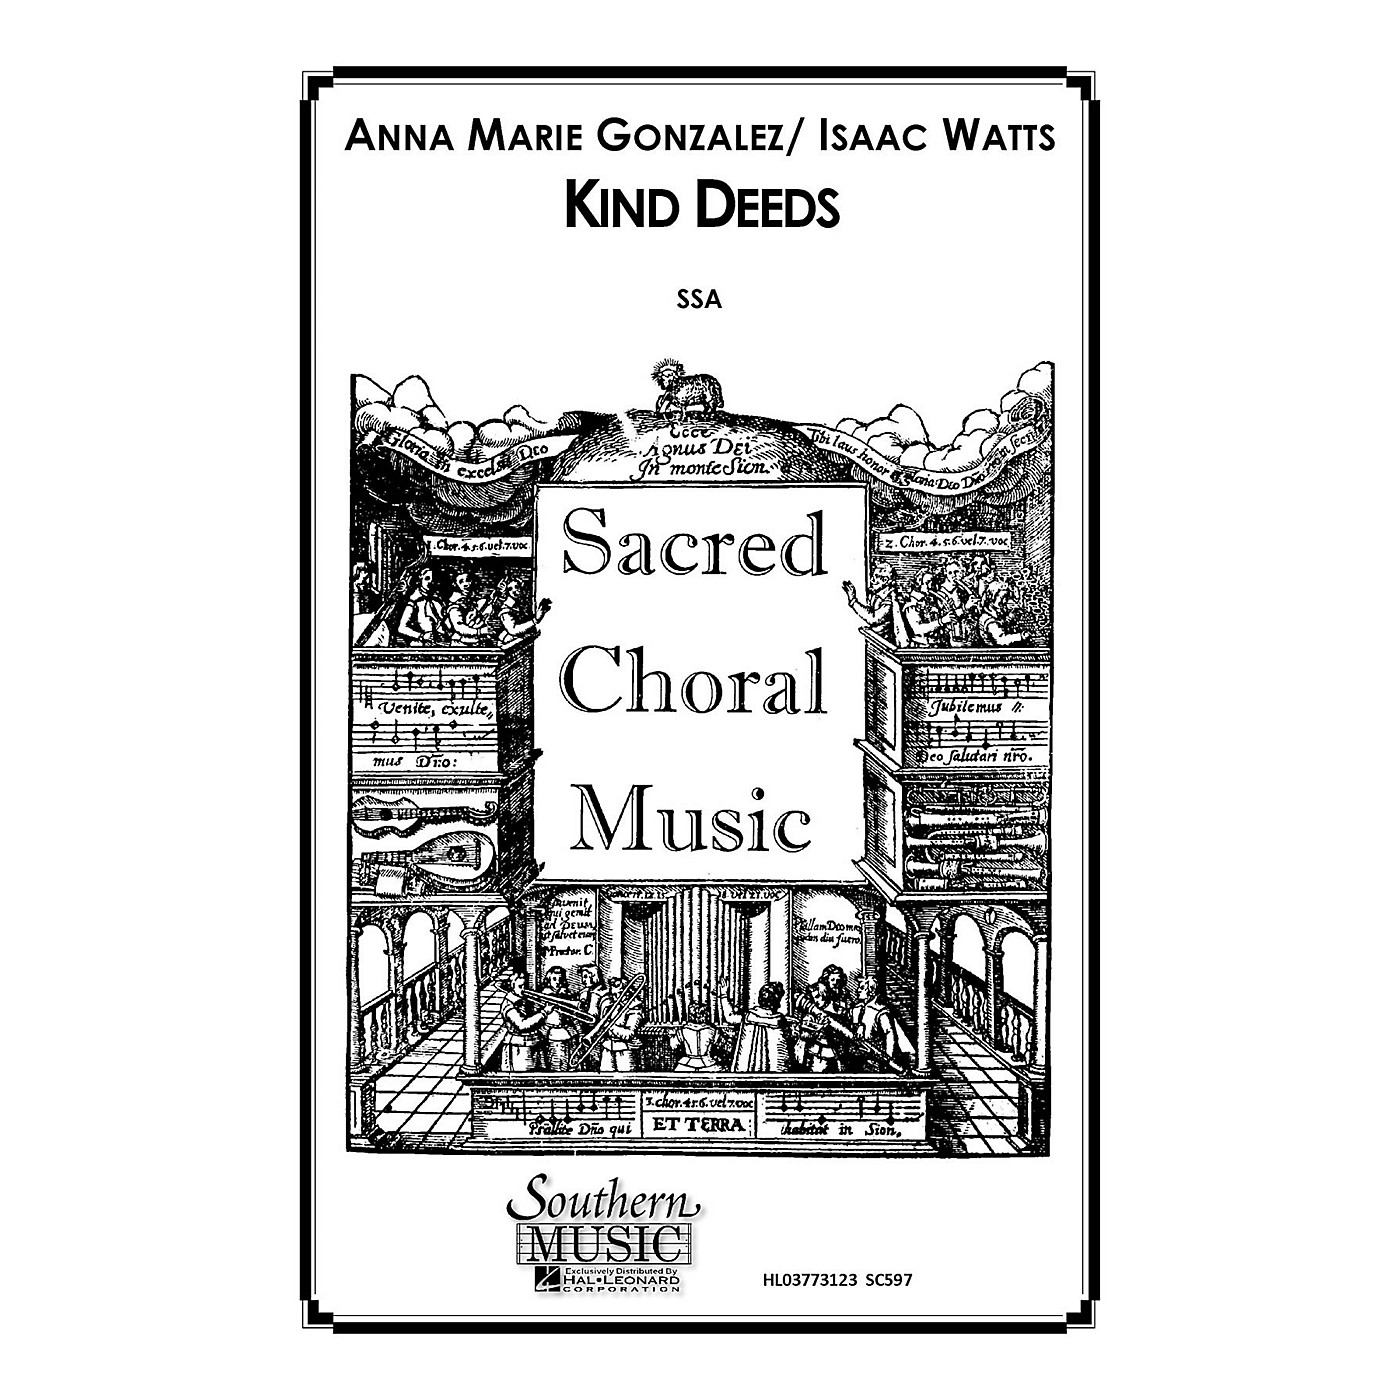 Hal Leonard Kind Deeds (Choral Music/Octavo Secular Ssa) SSA Composed by Gonzalez, Anna Marie thumbnail